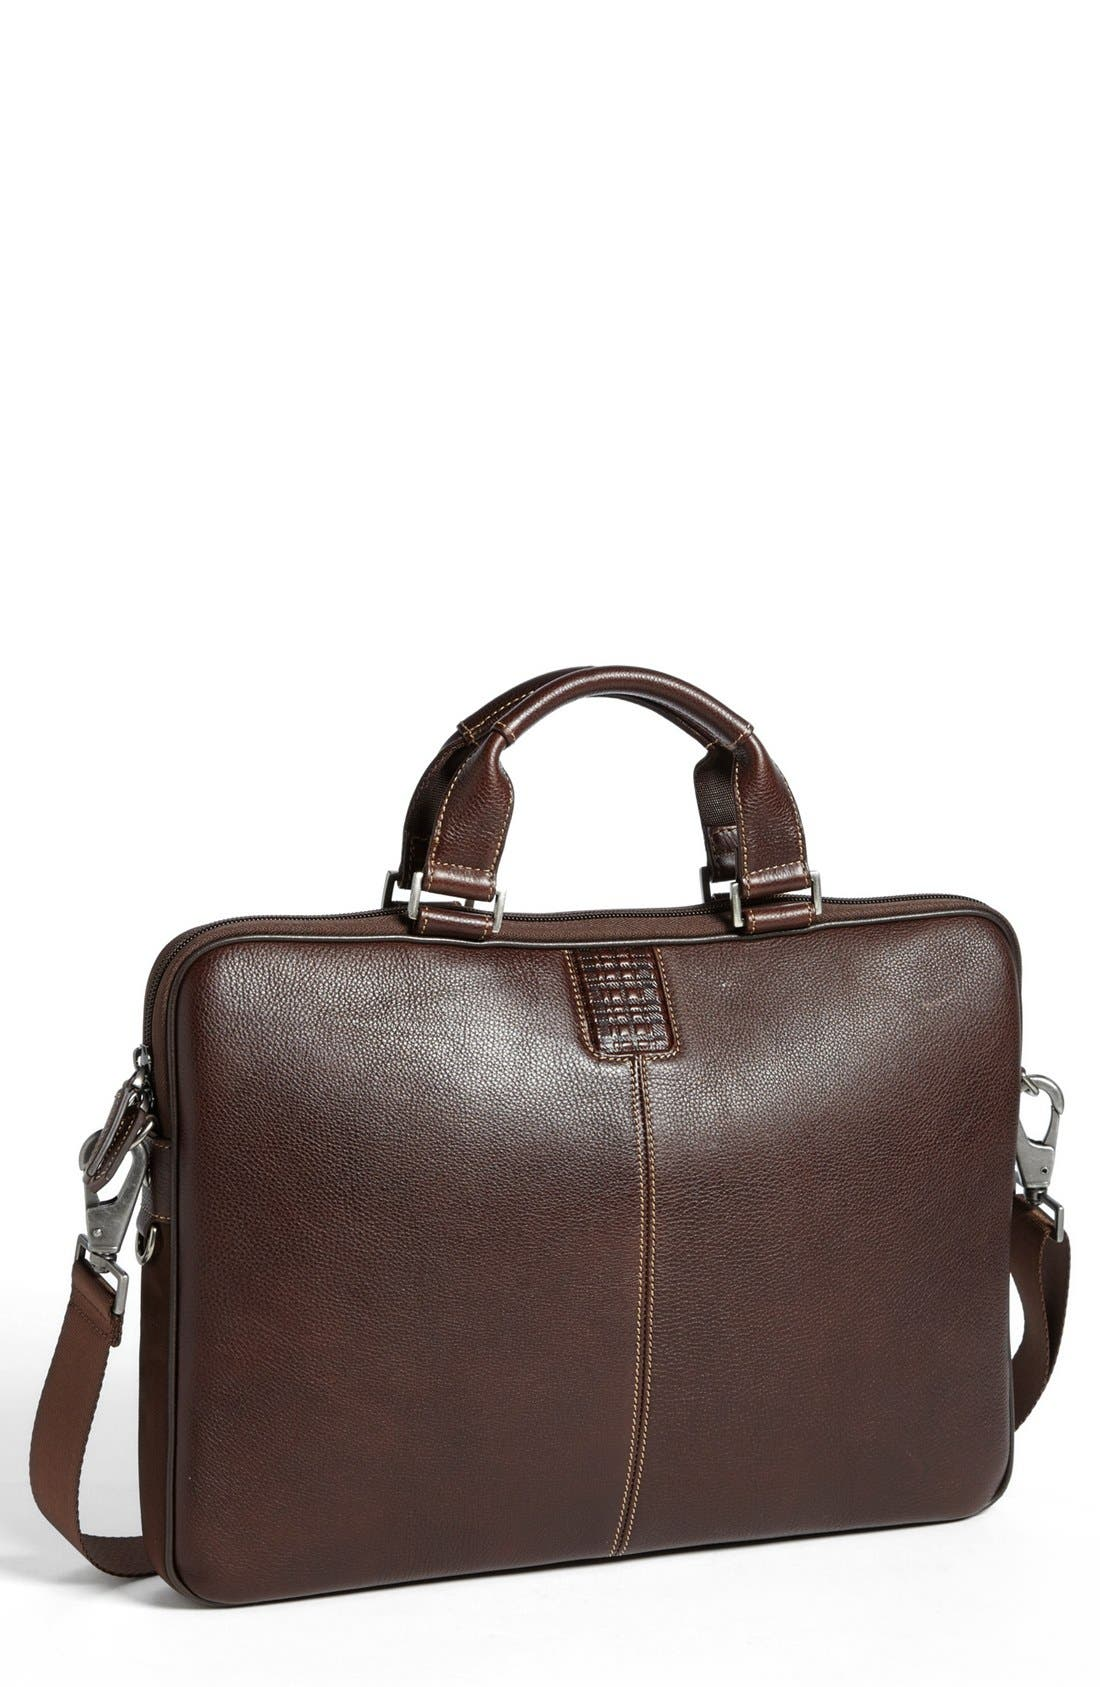 Mens Briefcase Backpacks Messenger Bags Duffels And Briefcases Zara Double Strap Bag Nordstrom